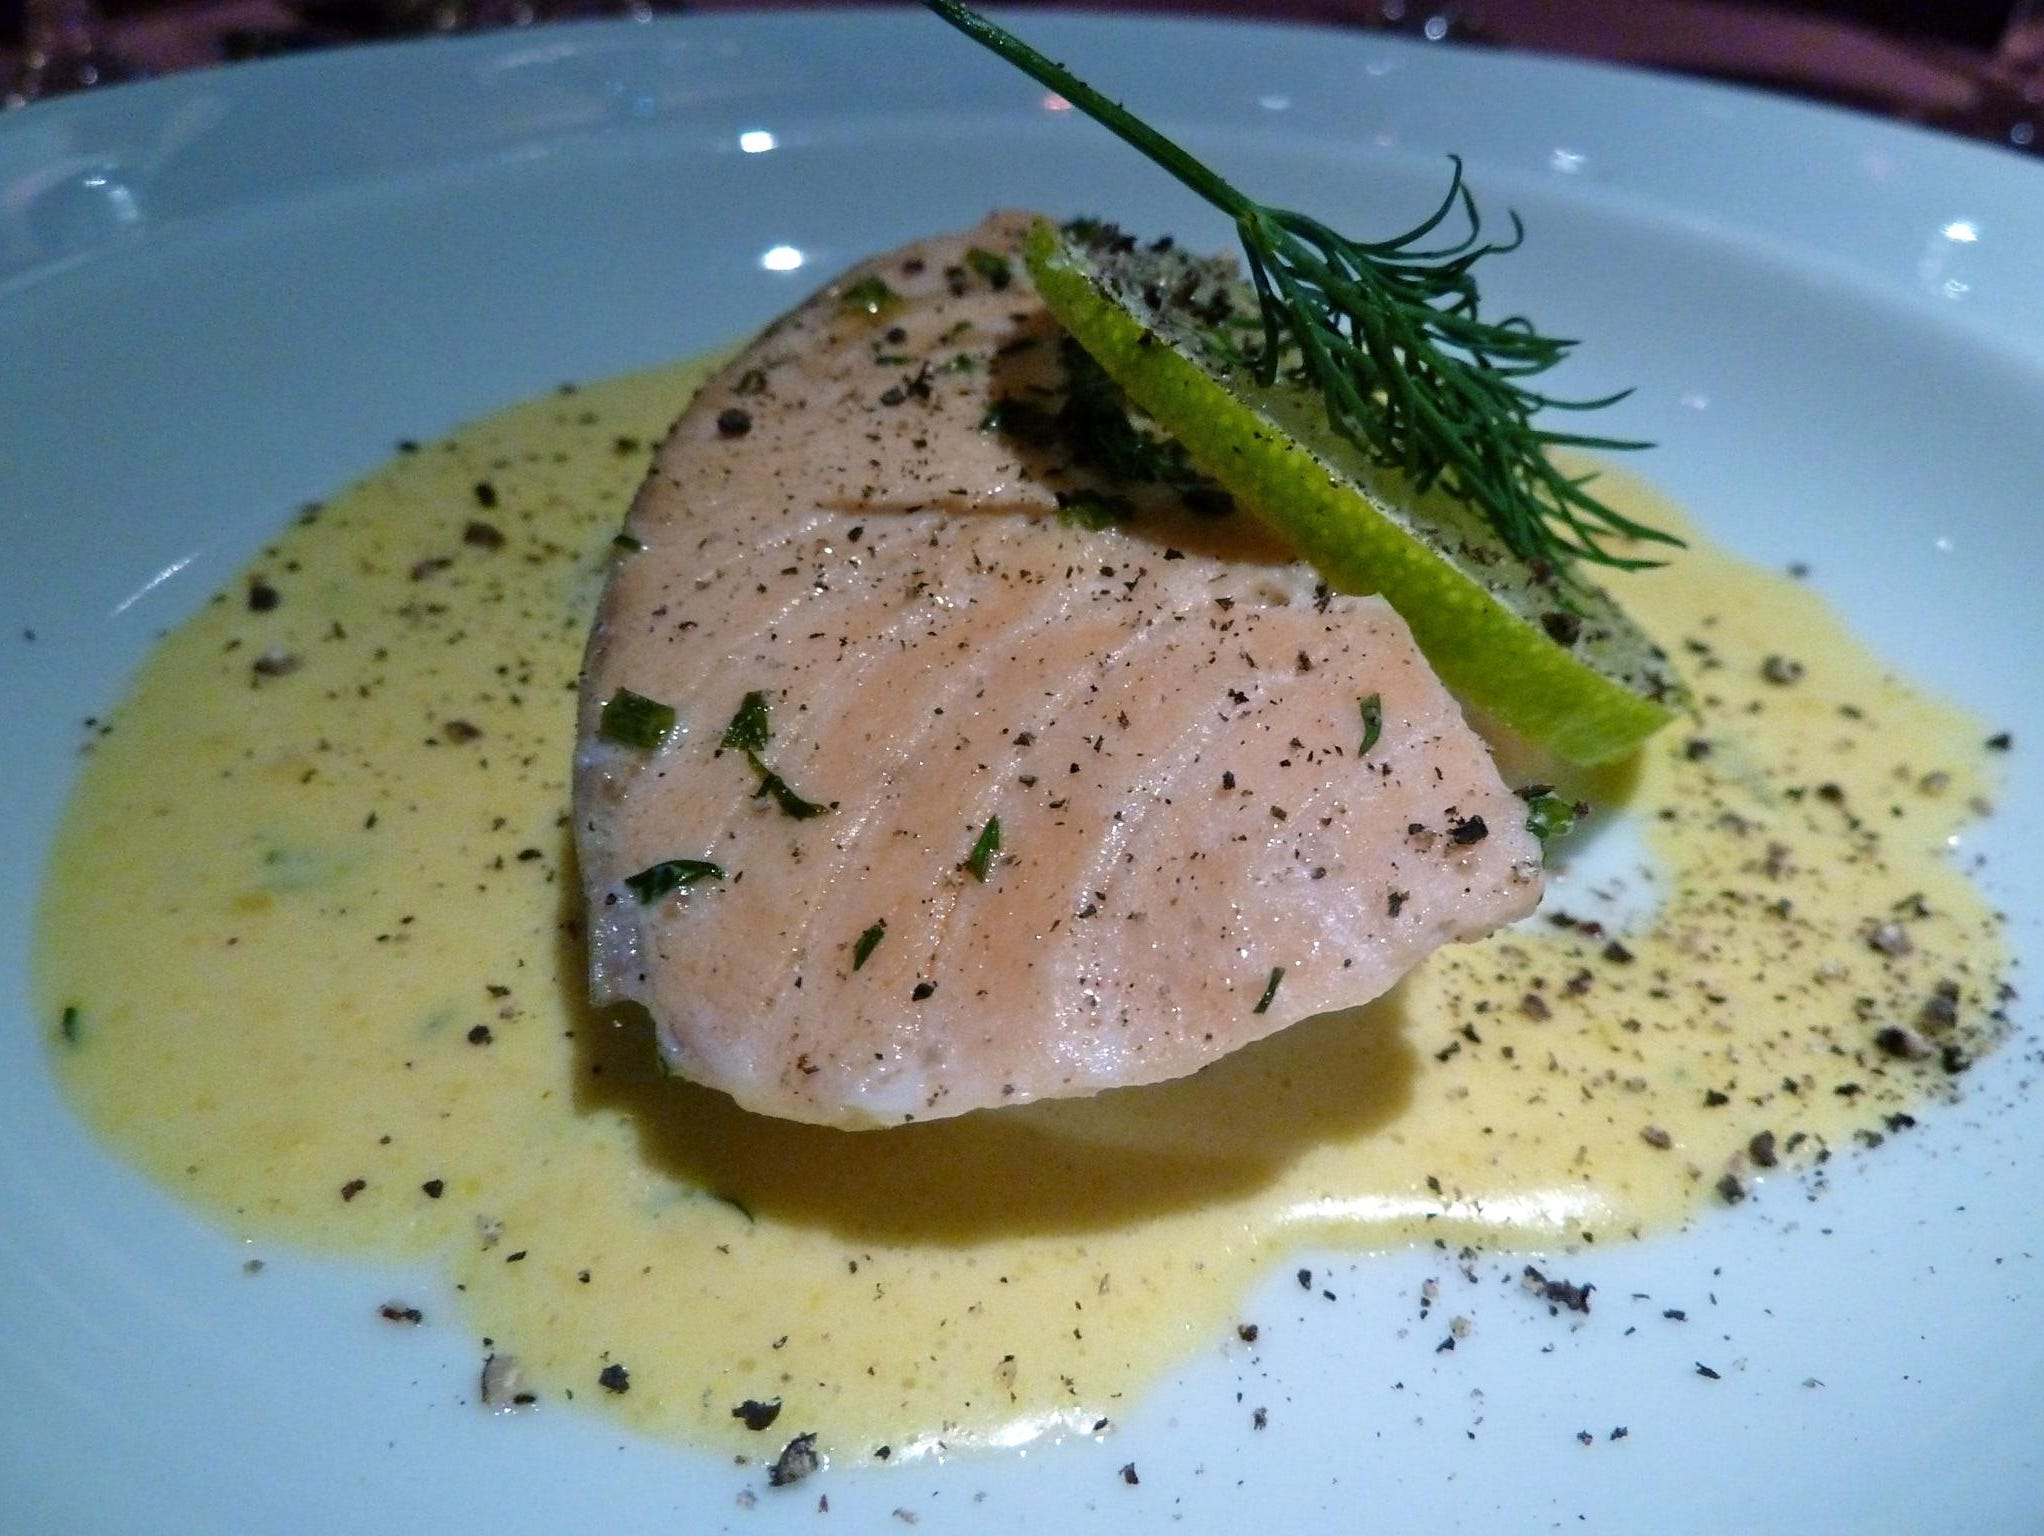 Dinners in the Waldorf include a selection of appetizers, soups, salads, entrées and desserts. This is a poached-salmon starter in a creamy dill and lime sauce.